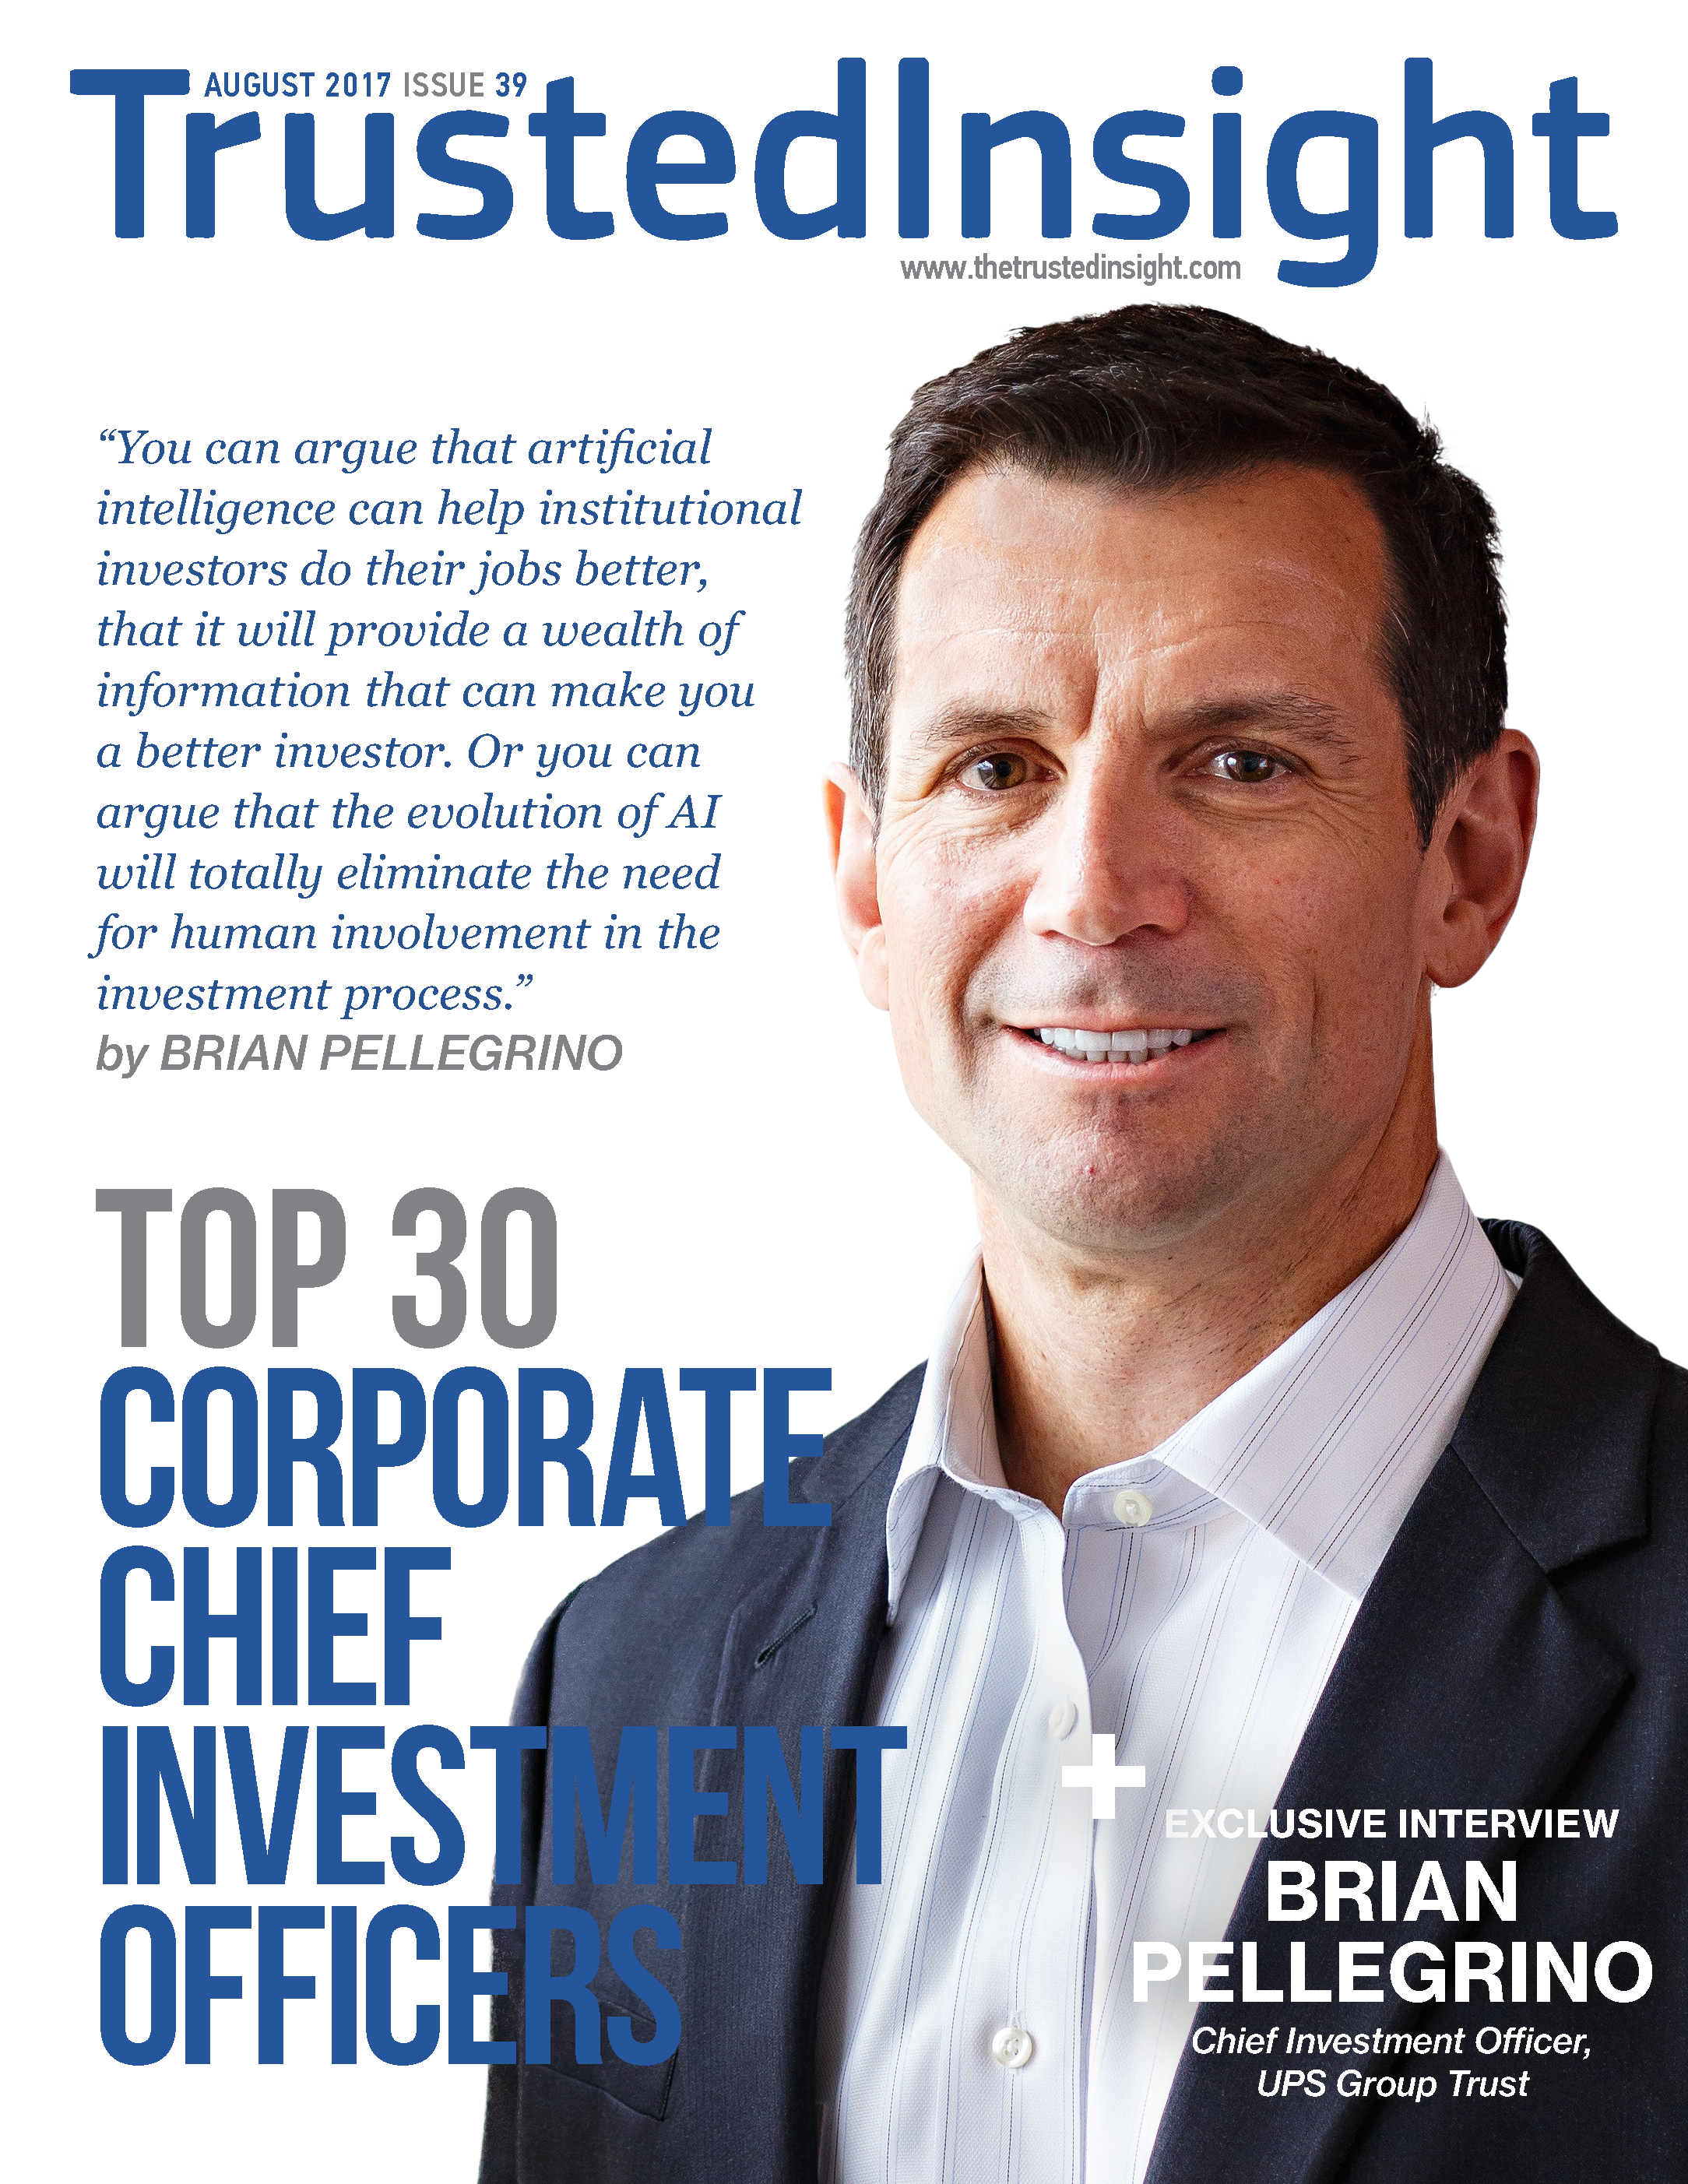 Trusted insight top 30 corporate chief investment officers 2017 2017 malvernweather Gallery